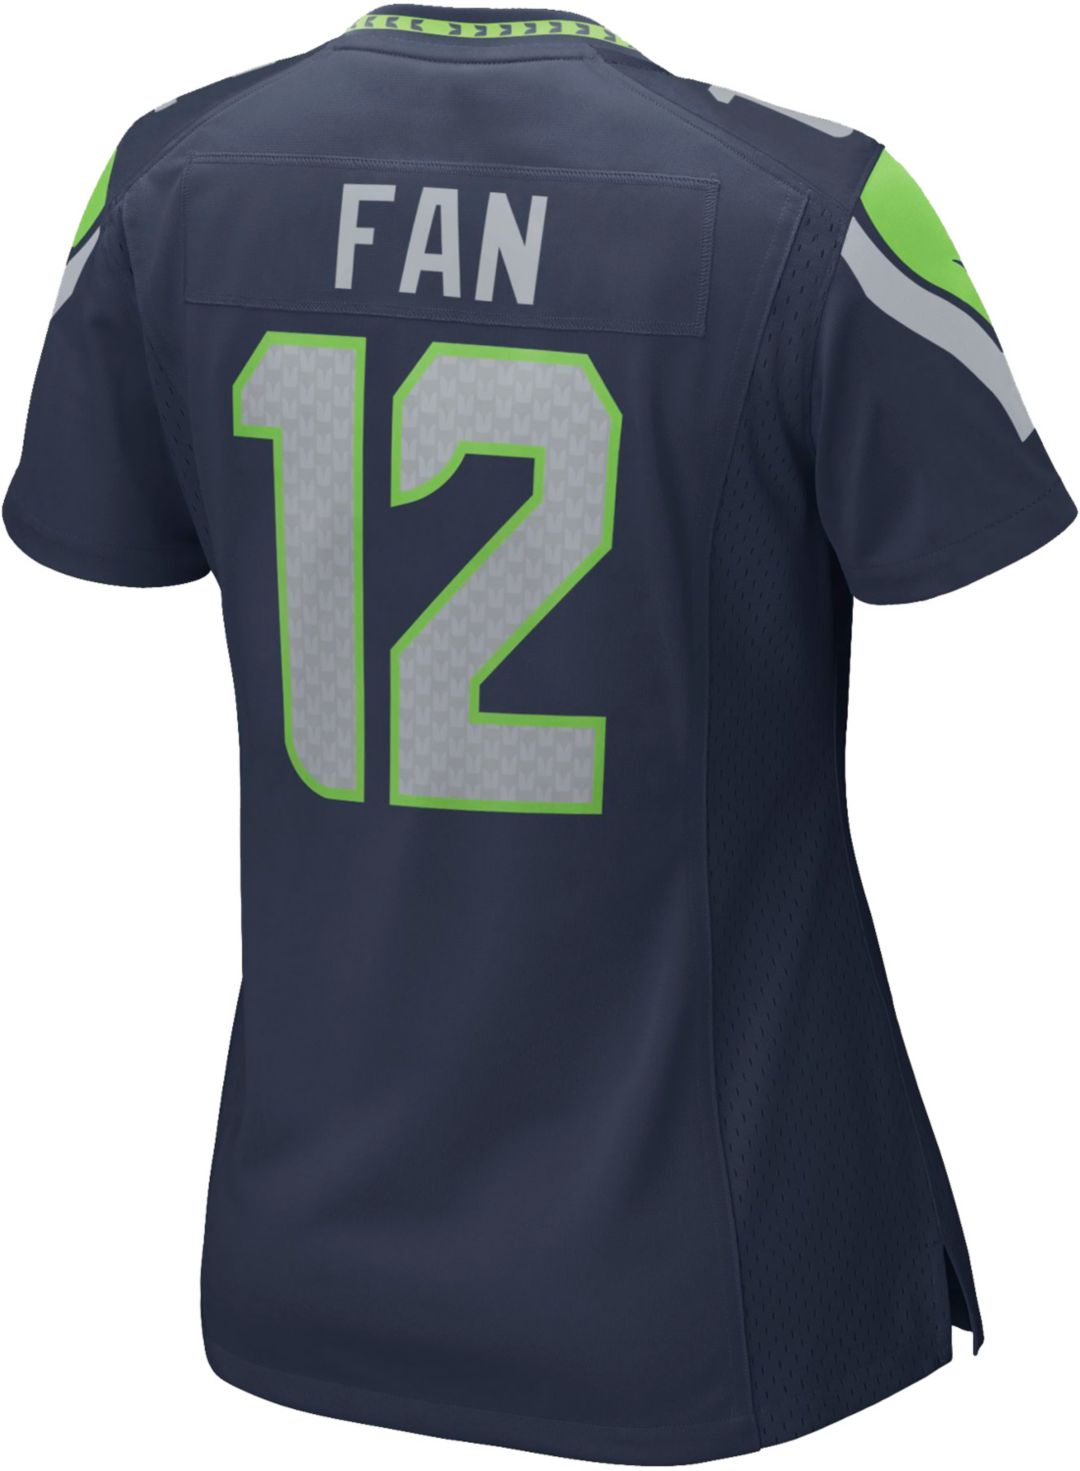 Wholesale Nike Women's Home Game Jersey Seattle Seahawks Fan #12 | DICK'S